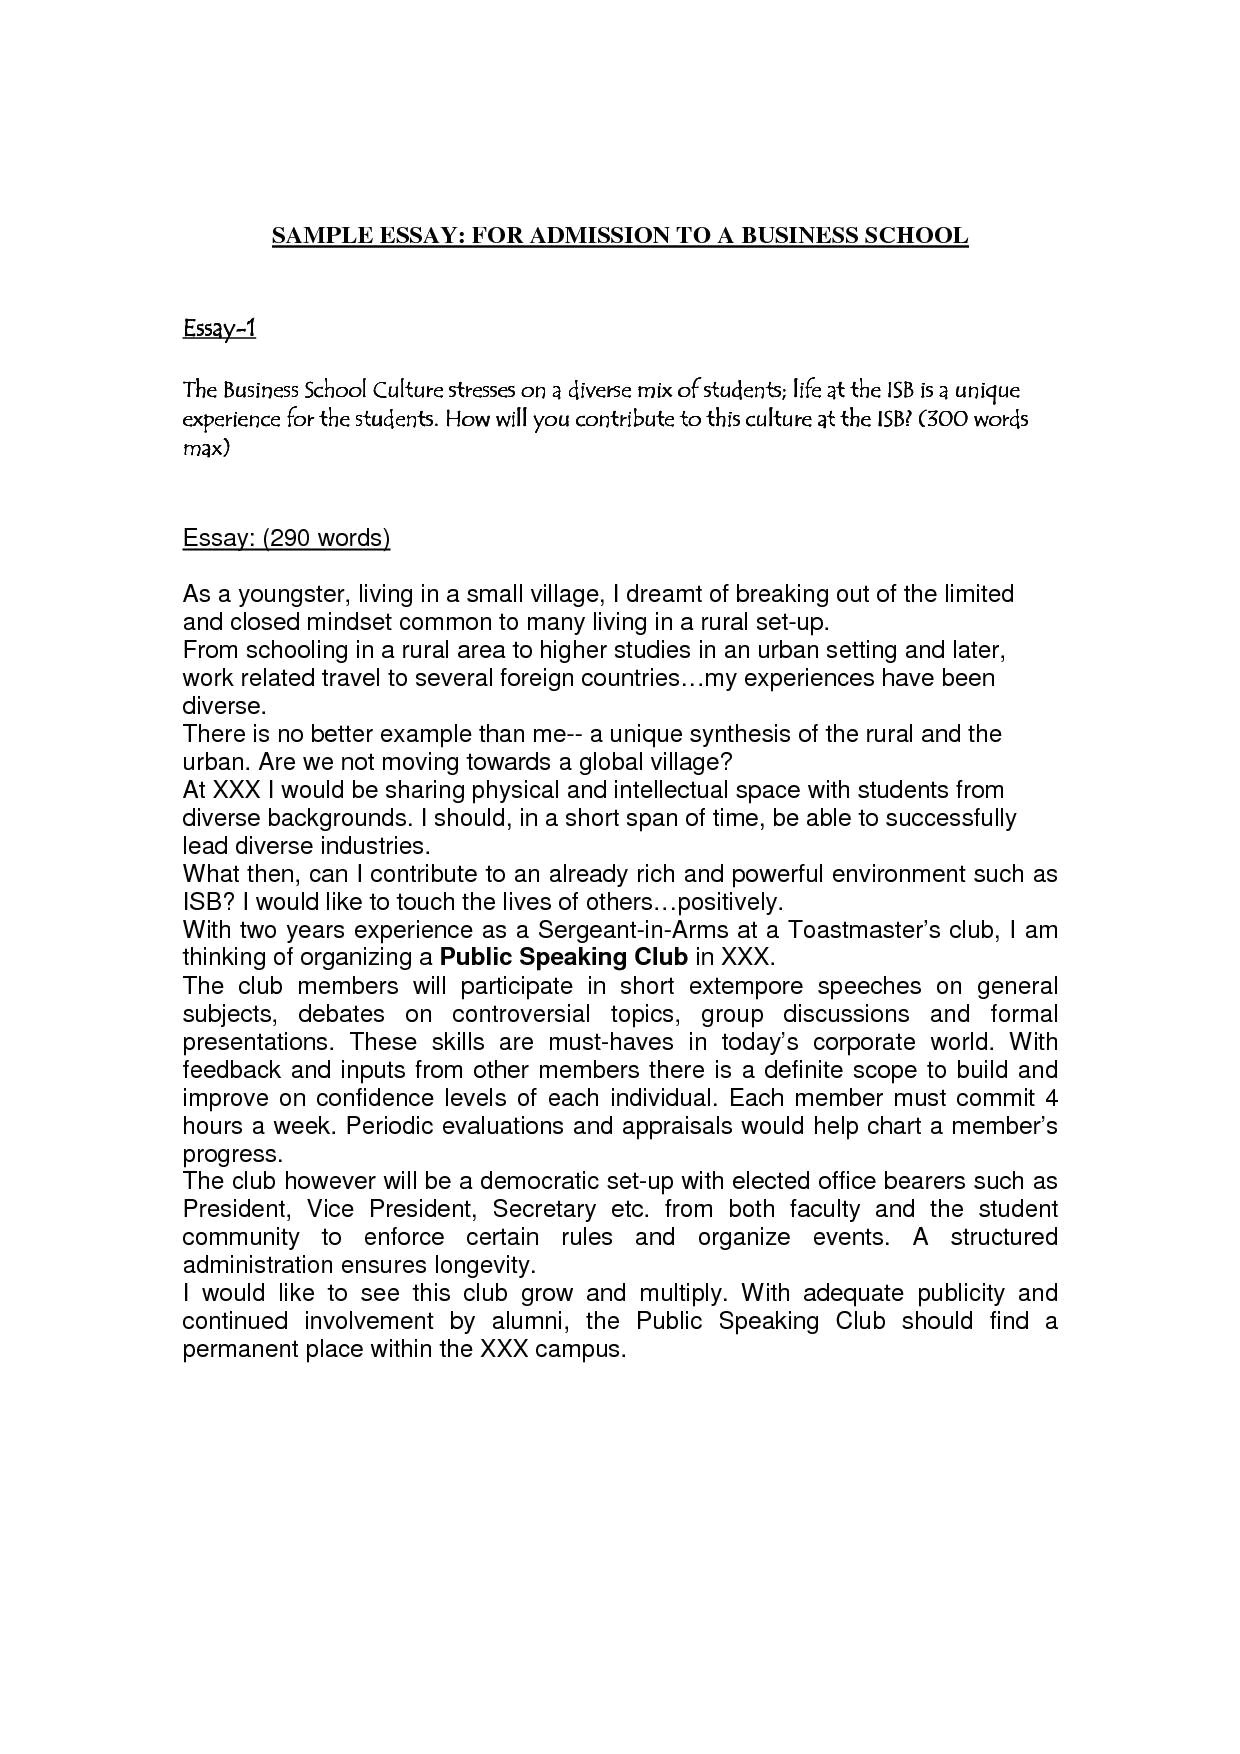 Sqa Resume Sample Sqa Resume Sample New Business Essay there are too Many